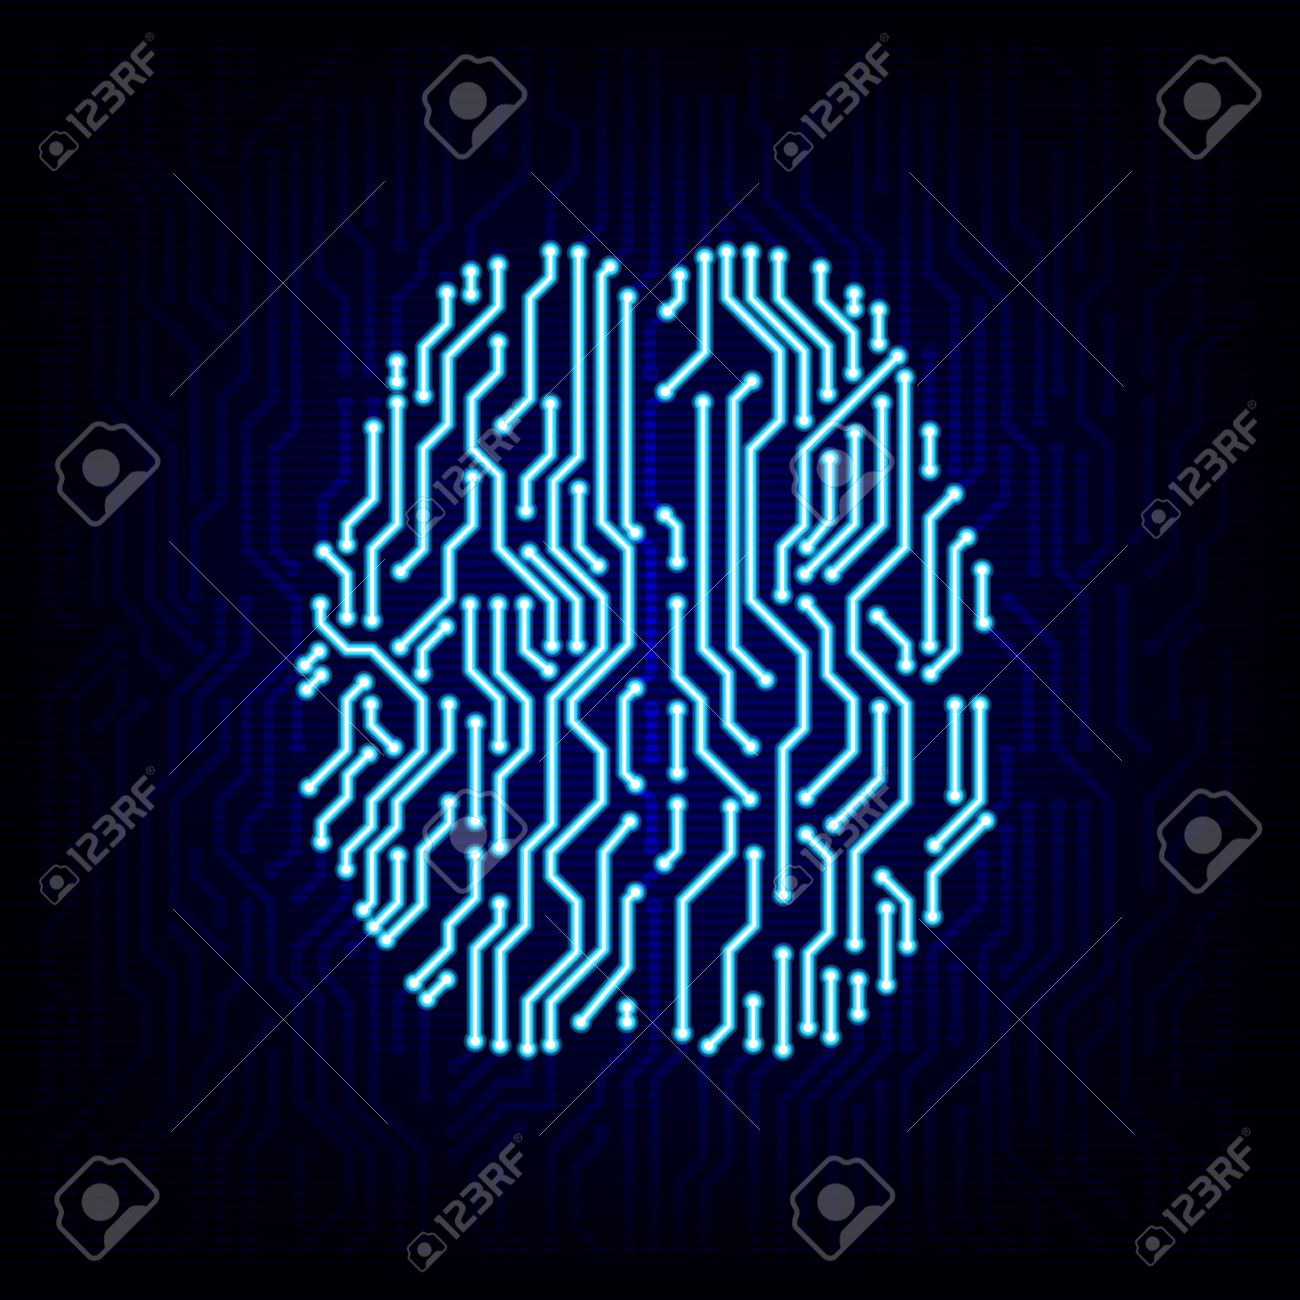 Artificial intelligence concept. Circuit board brain logo icon on the digital high tech style vector background. - 44482184